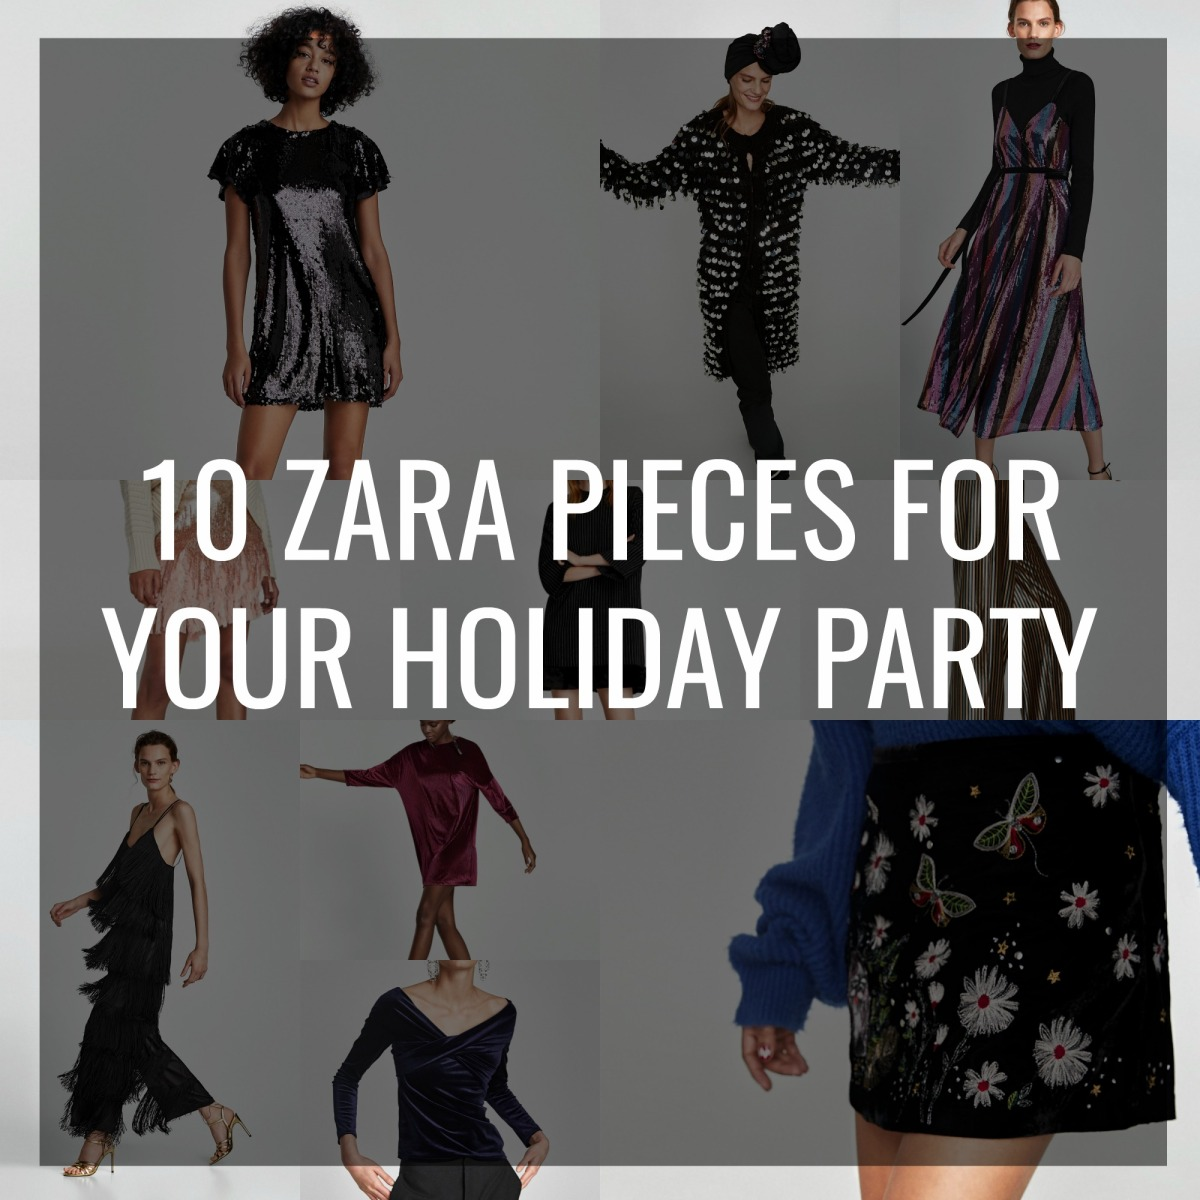 10 Zara Pieces for Your Holiday Party